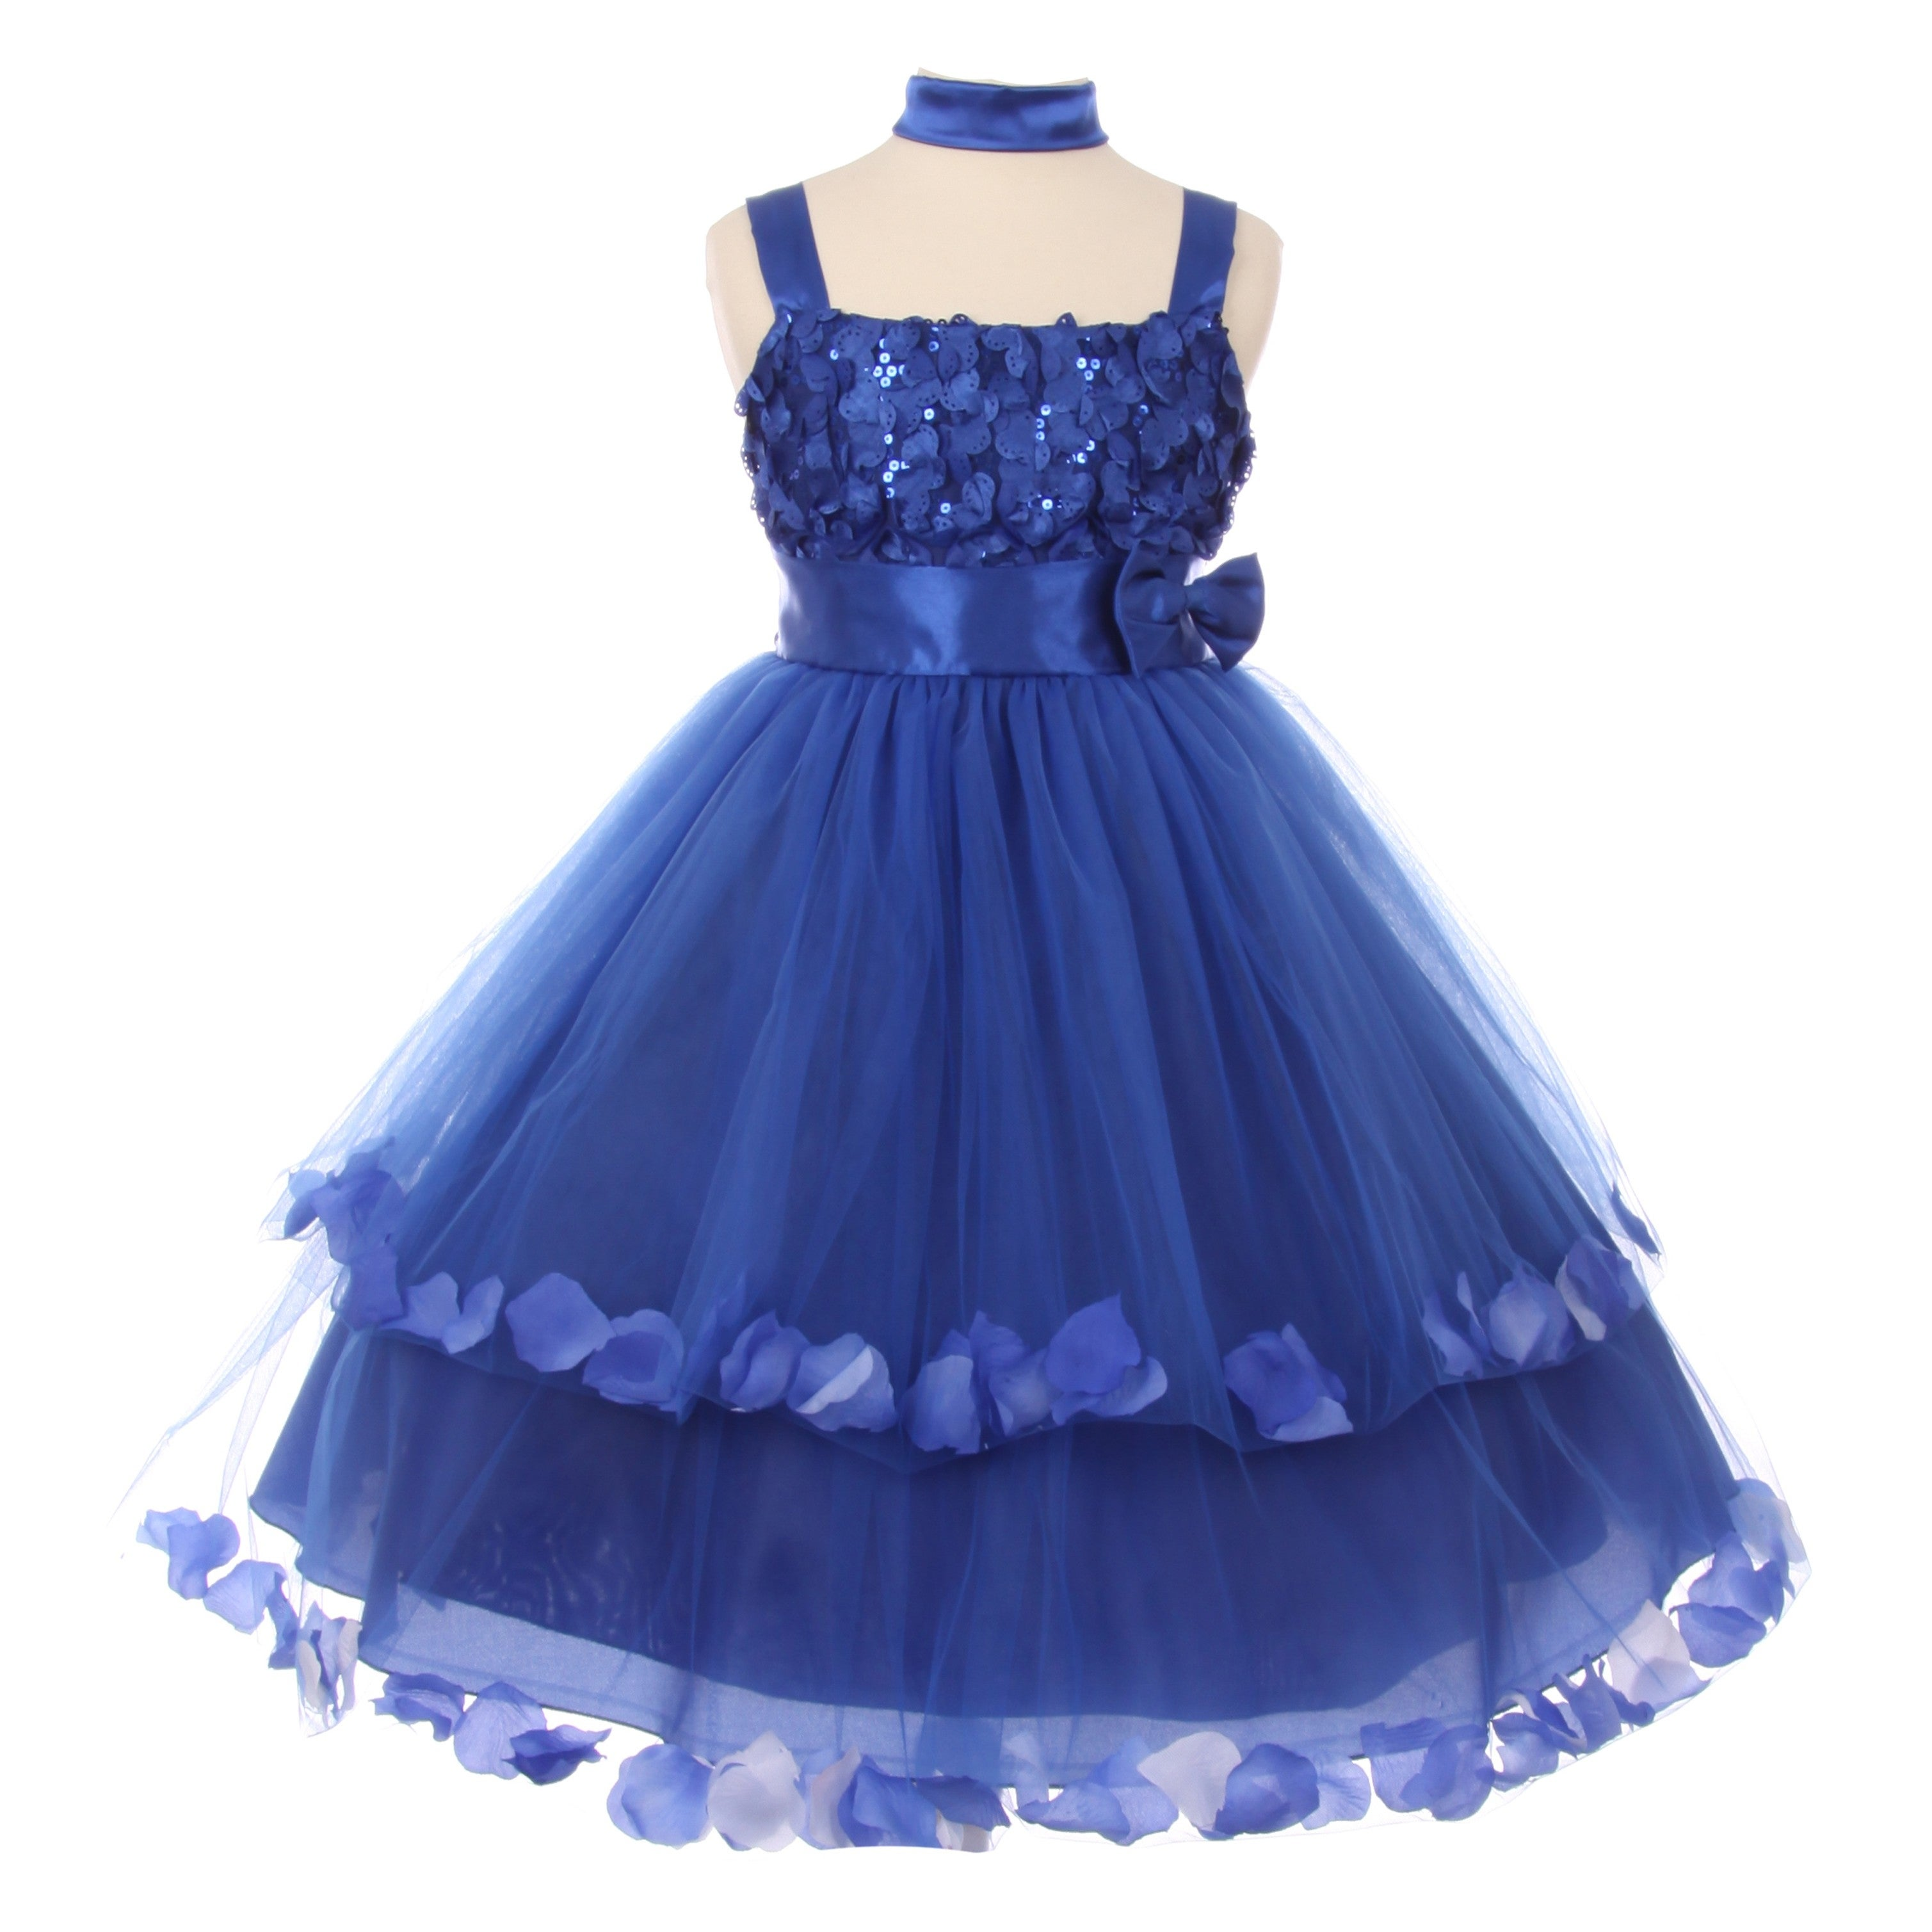 bfaa94e8fc Shop Little Girls Royal Blue Sequin Floating Petals Flower Girl Occasion  Dress - Free Shipping Today - Overstock - 18163100